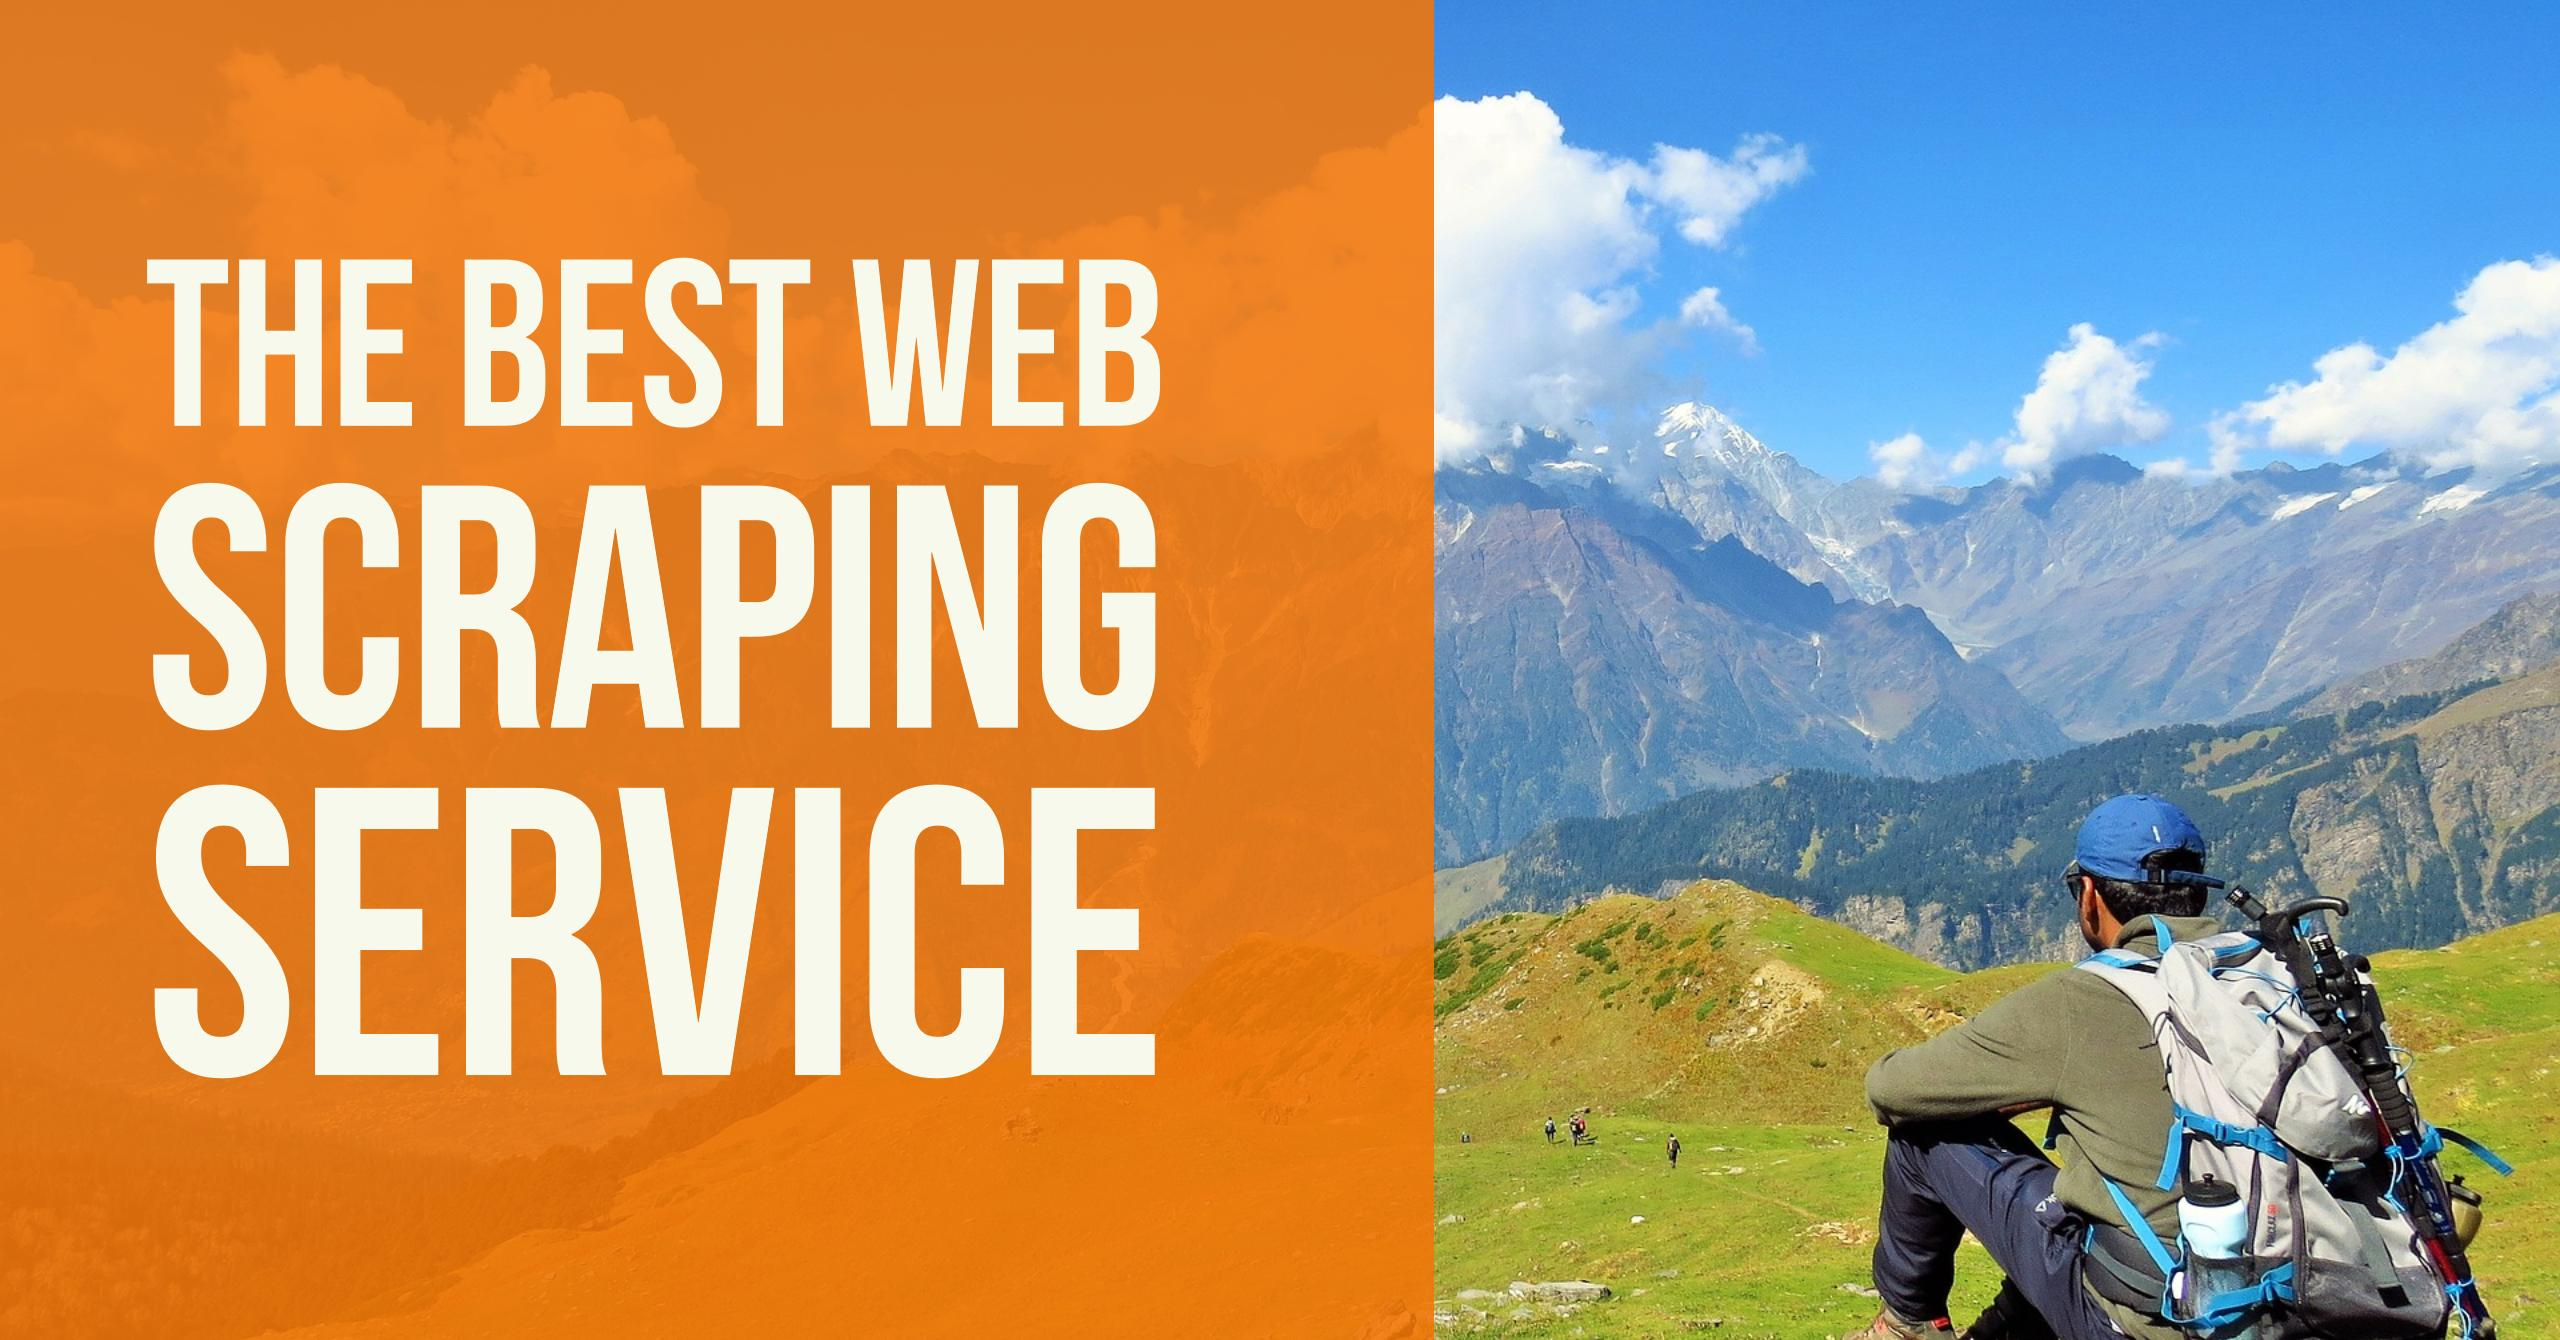 The best web scraping service